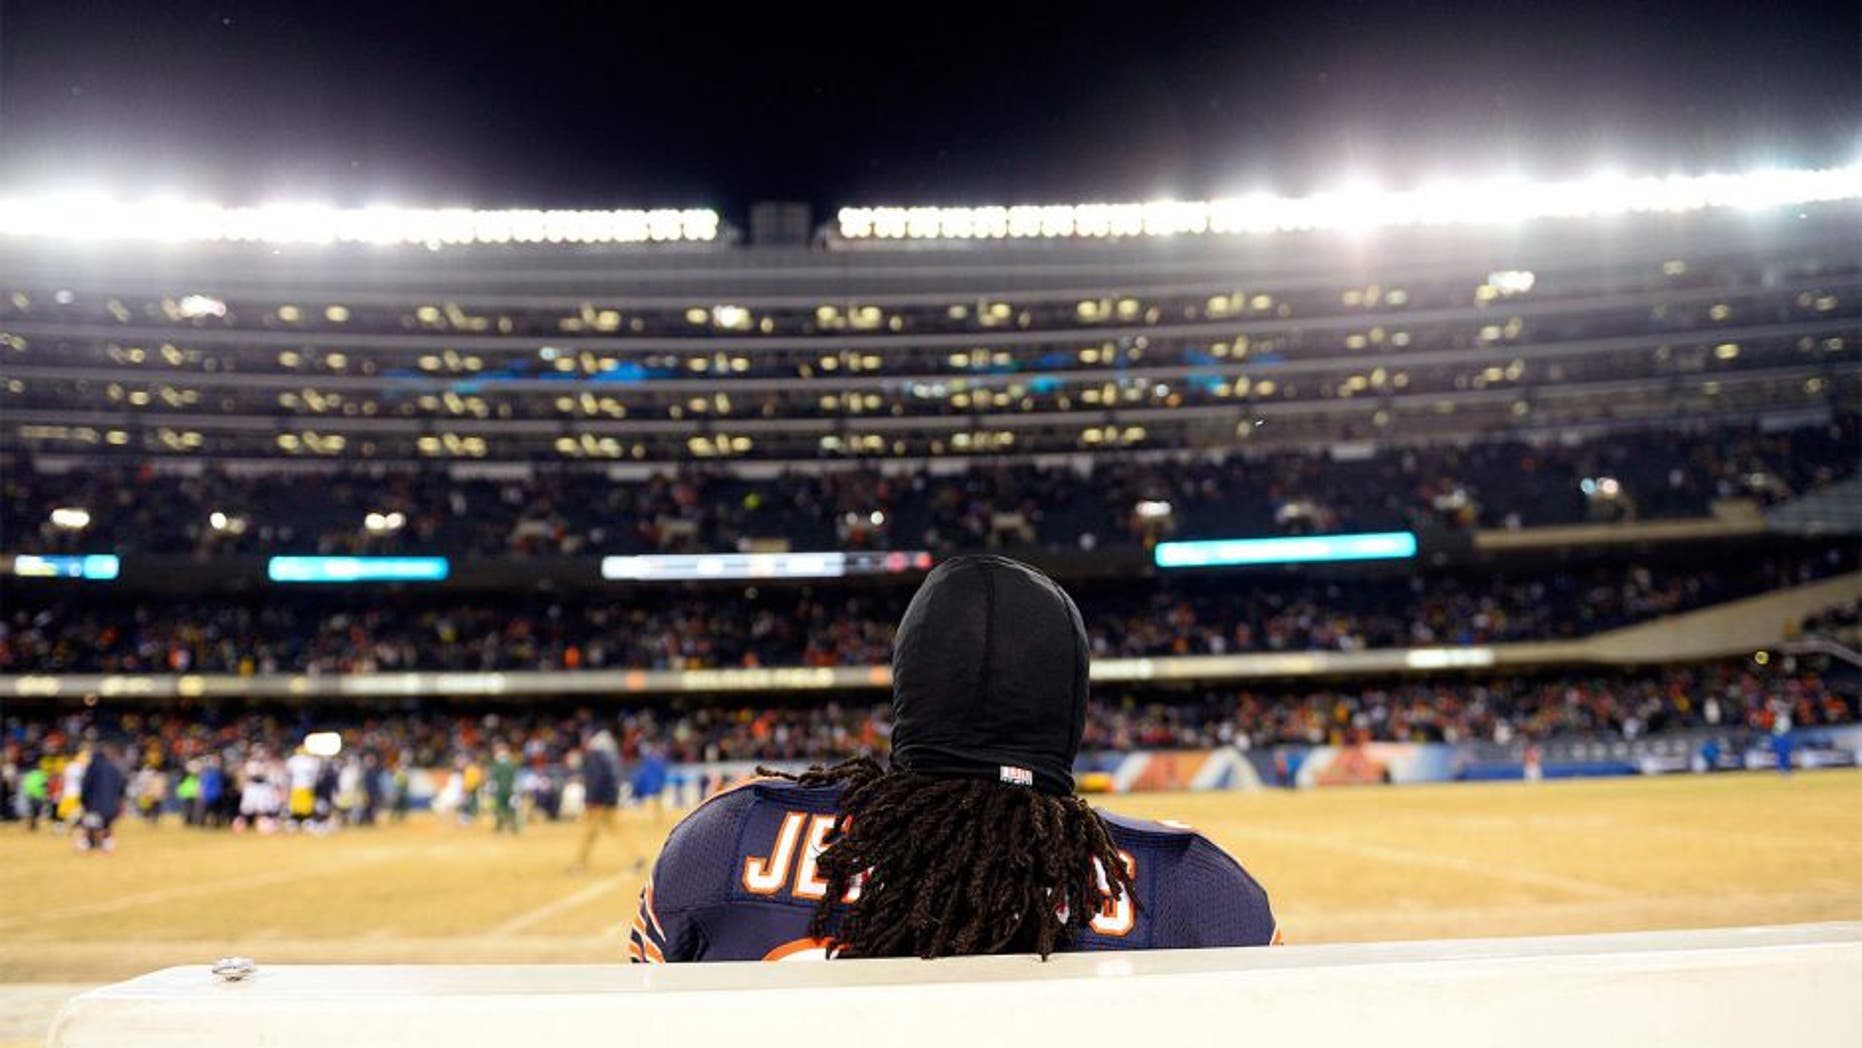 Dec 29, 2013; Chicago, IL, USA; Chicago Bears cornerback Tim Jennings (26) sits on the bench after the game against the Green Bay Packers at Soldier Field. The Green Bay Packers win 33-28. Mandatory Credit: Mike DiNovo-USA TODAY Sports